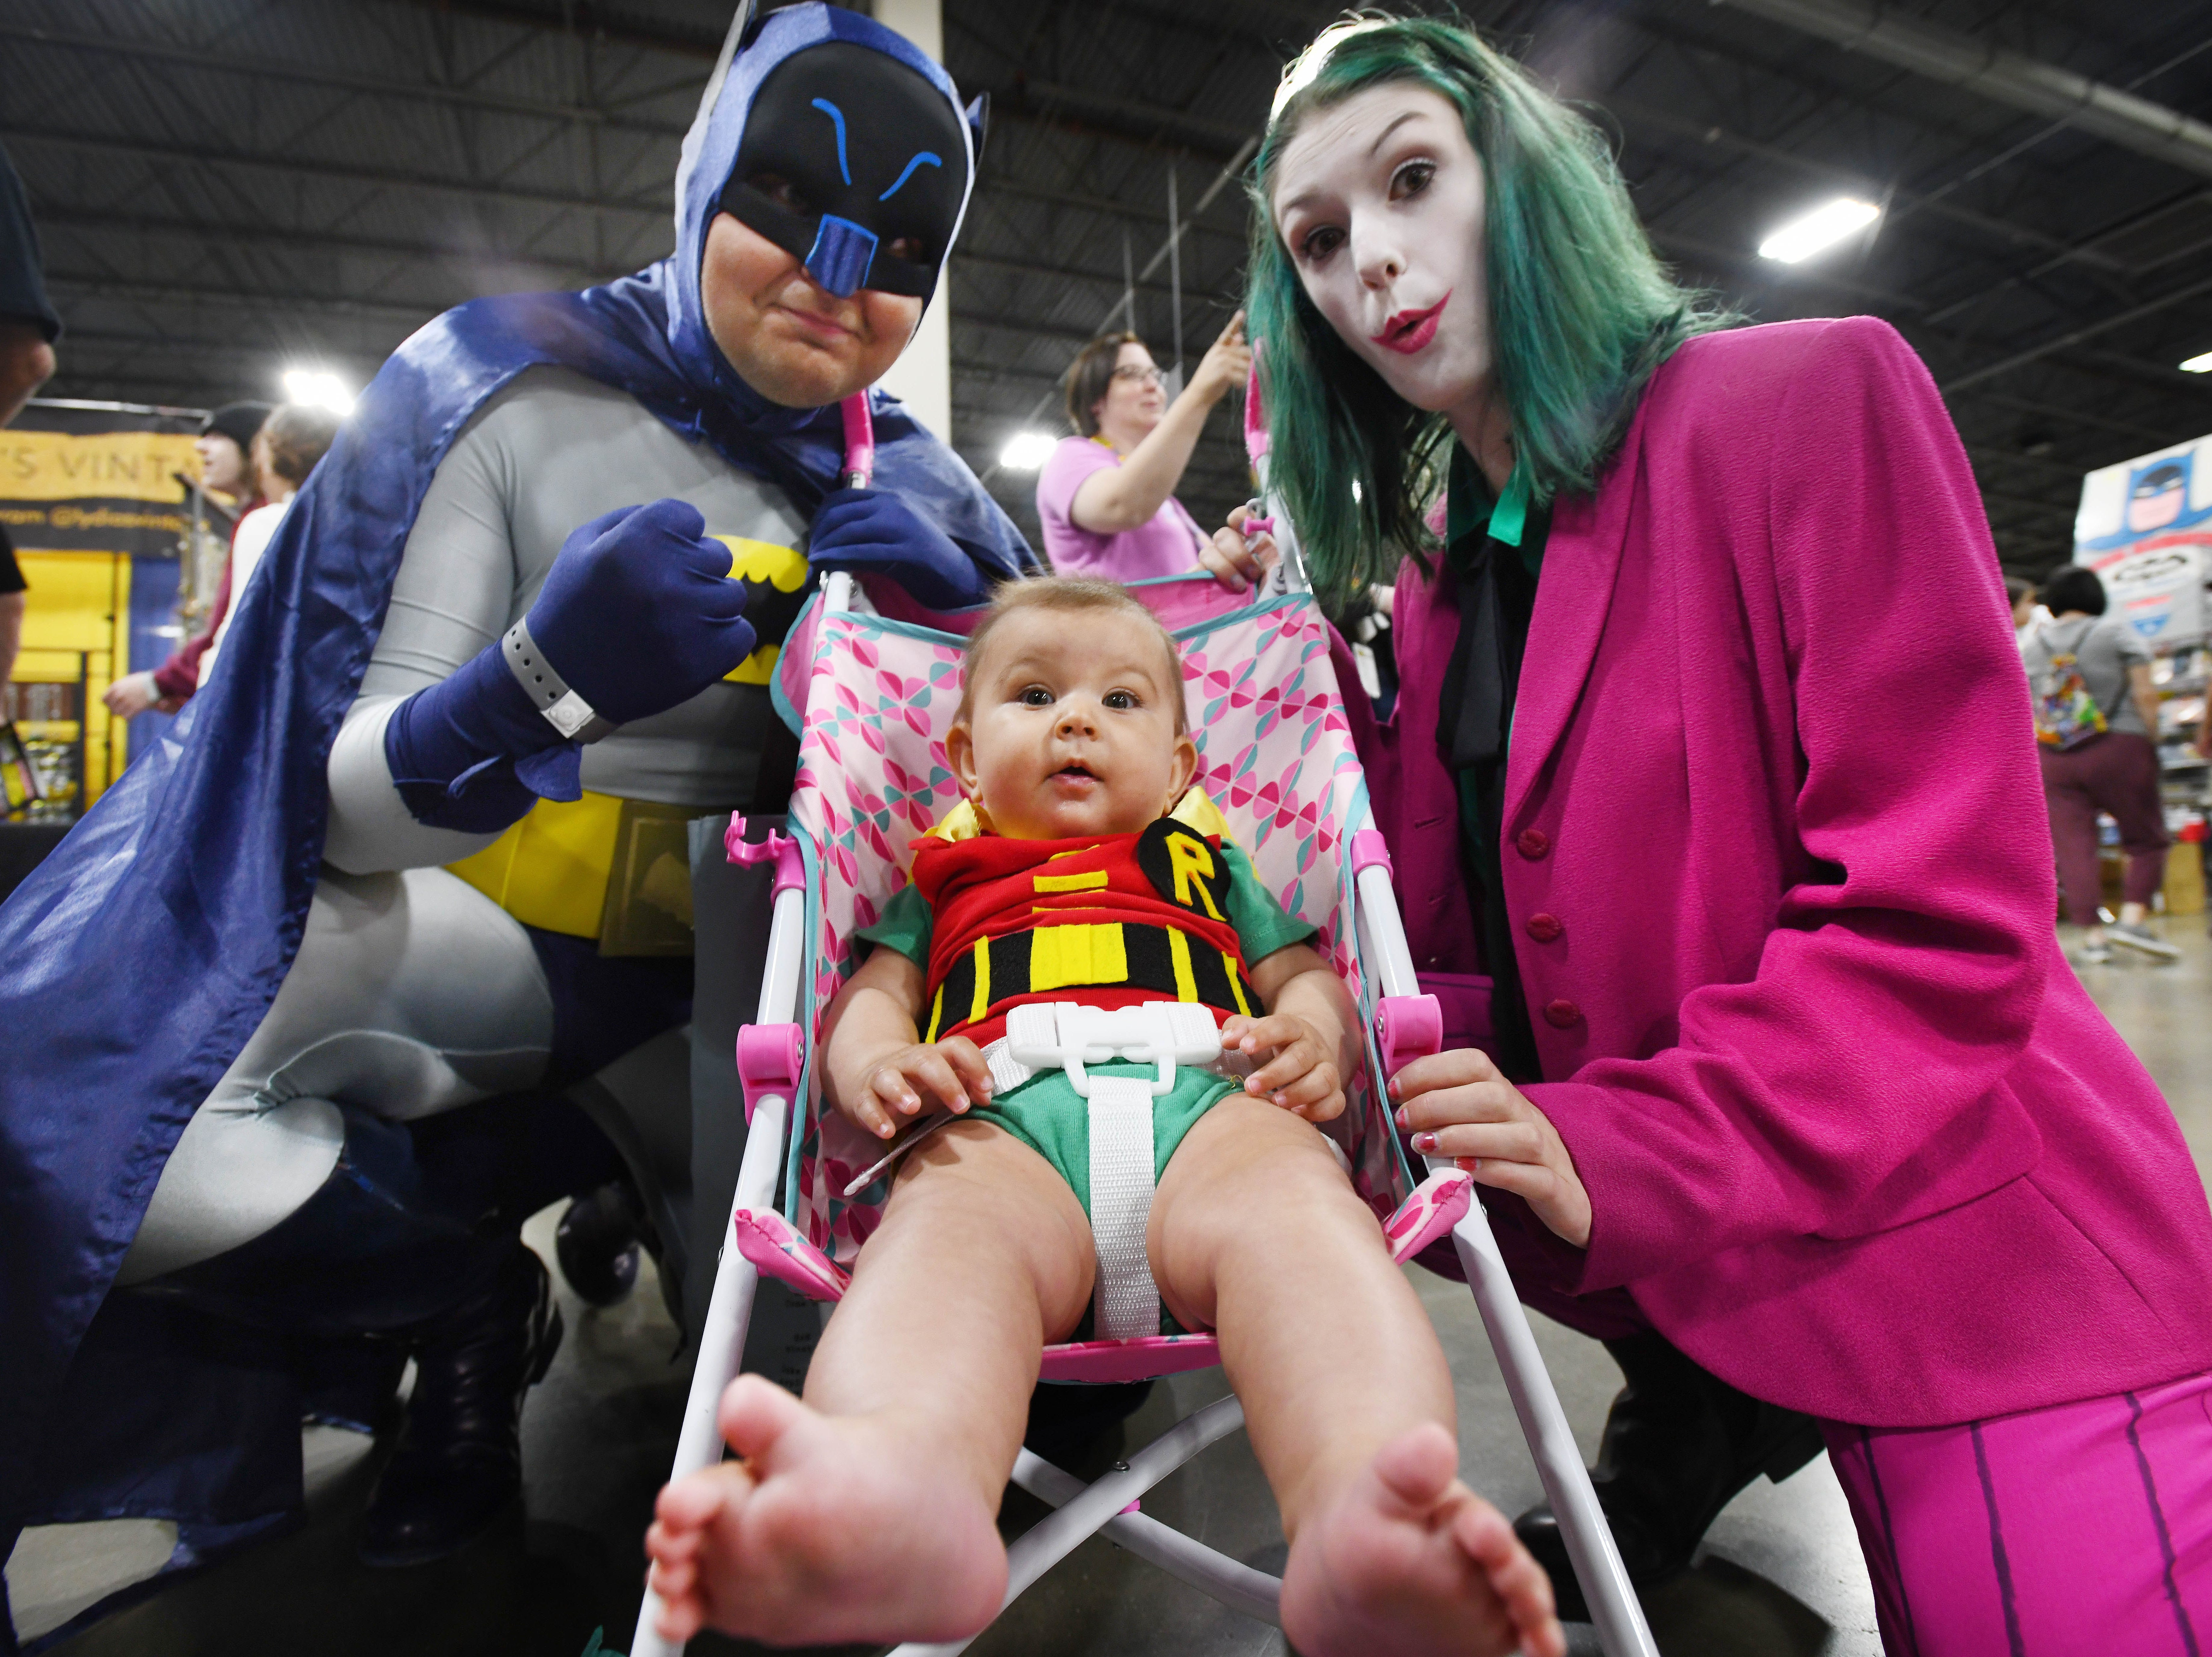 Tim Parrelly with wife Ehlana Parrelly and daughter Ellie Parrelly, 5 months, look the part in classic Batman, Robin and the Joker outfits at Motor City Comic Con at Suburban Collection Showcase  in Novi, Michigan on May 17, 2019.